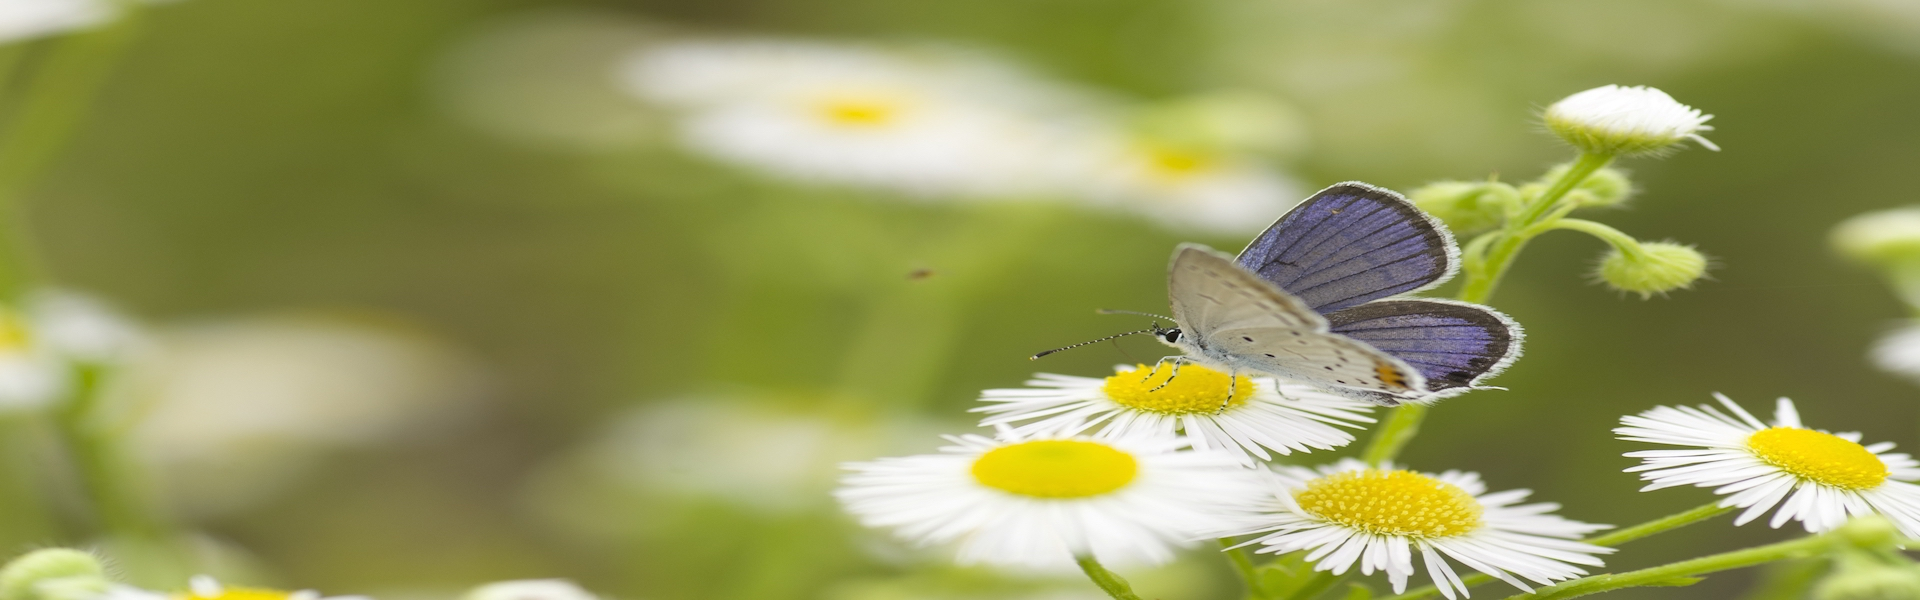 butterfly-daisies